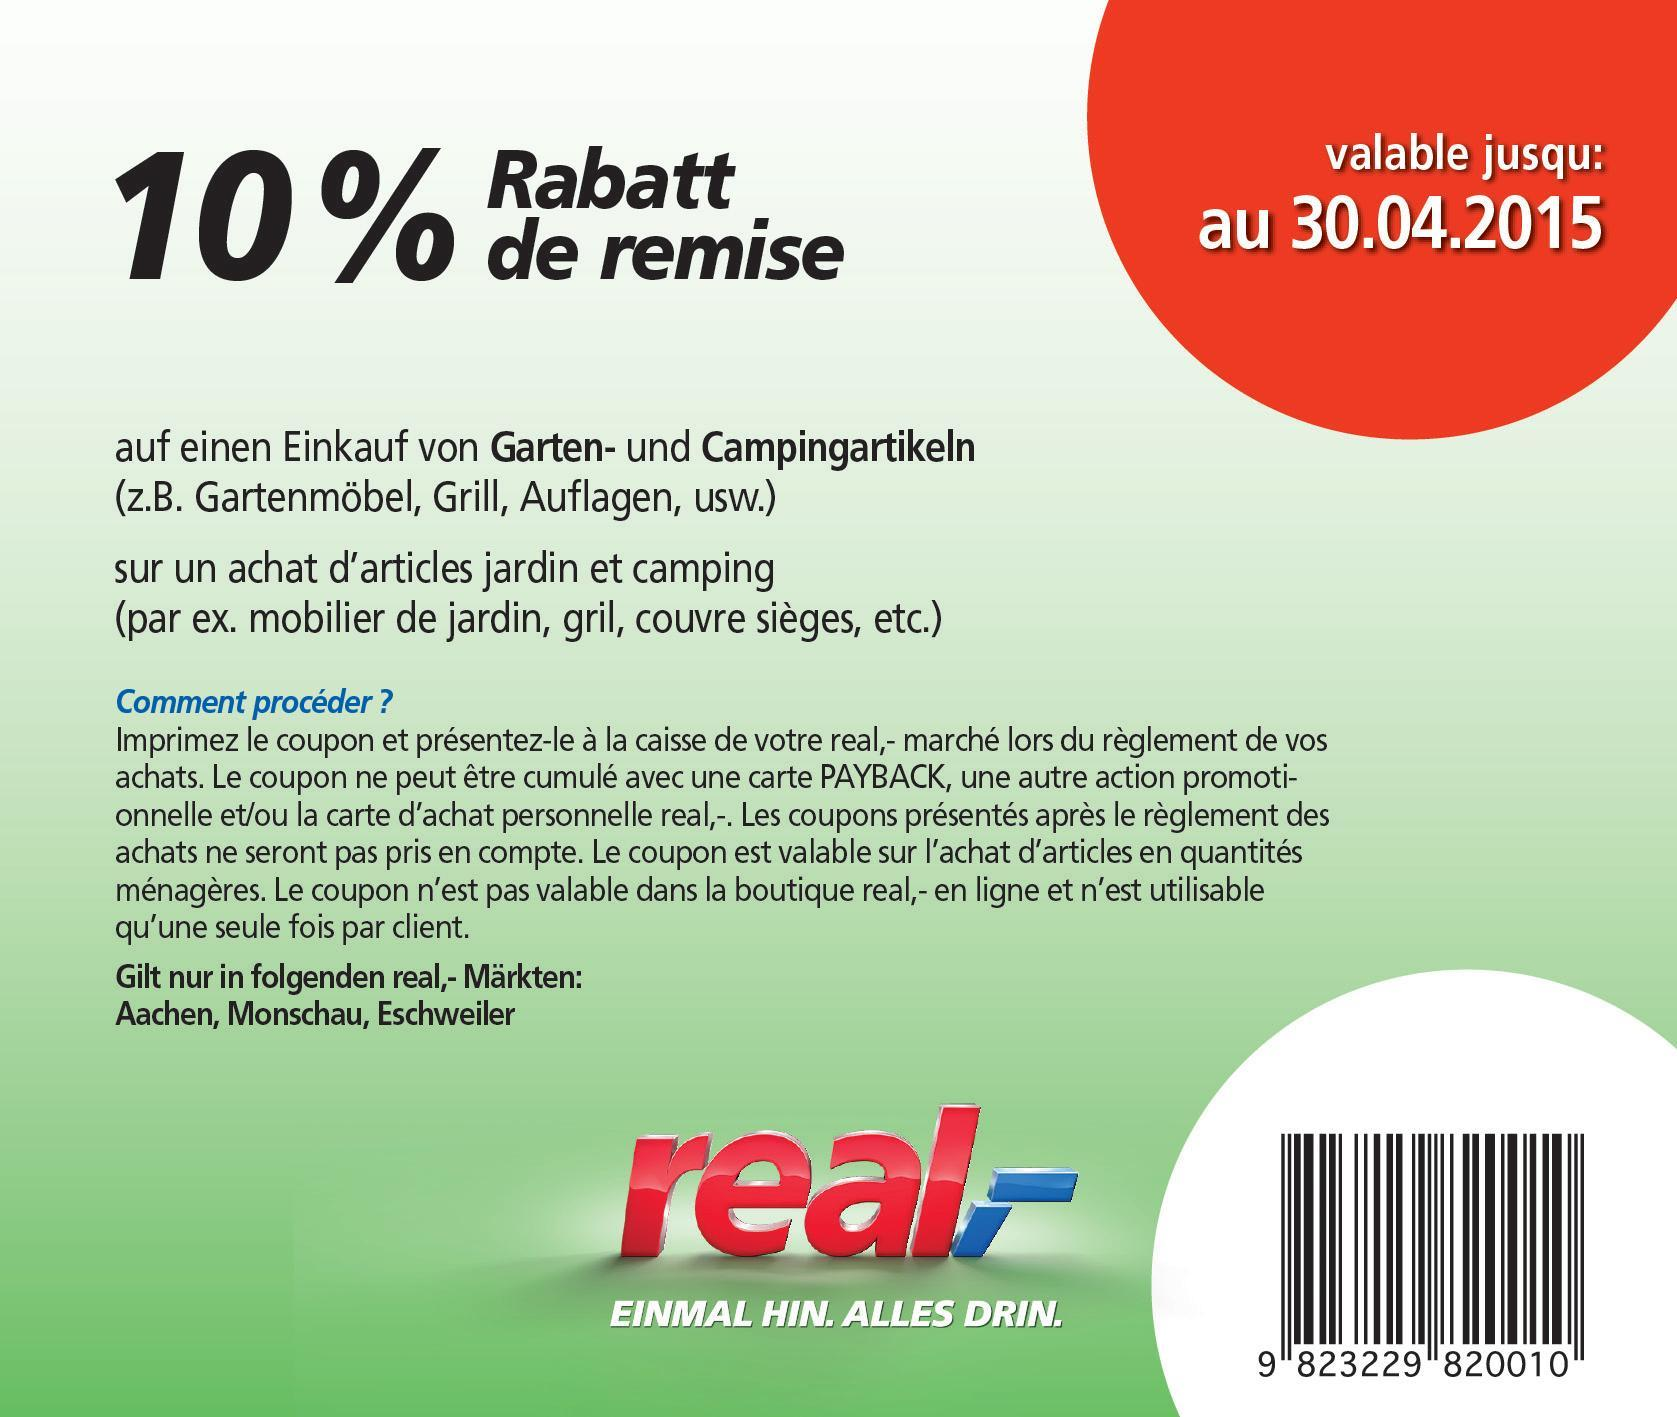 coupons_apr_2015_be-p3xbmt.jpg